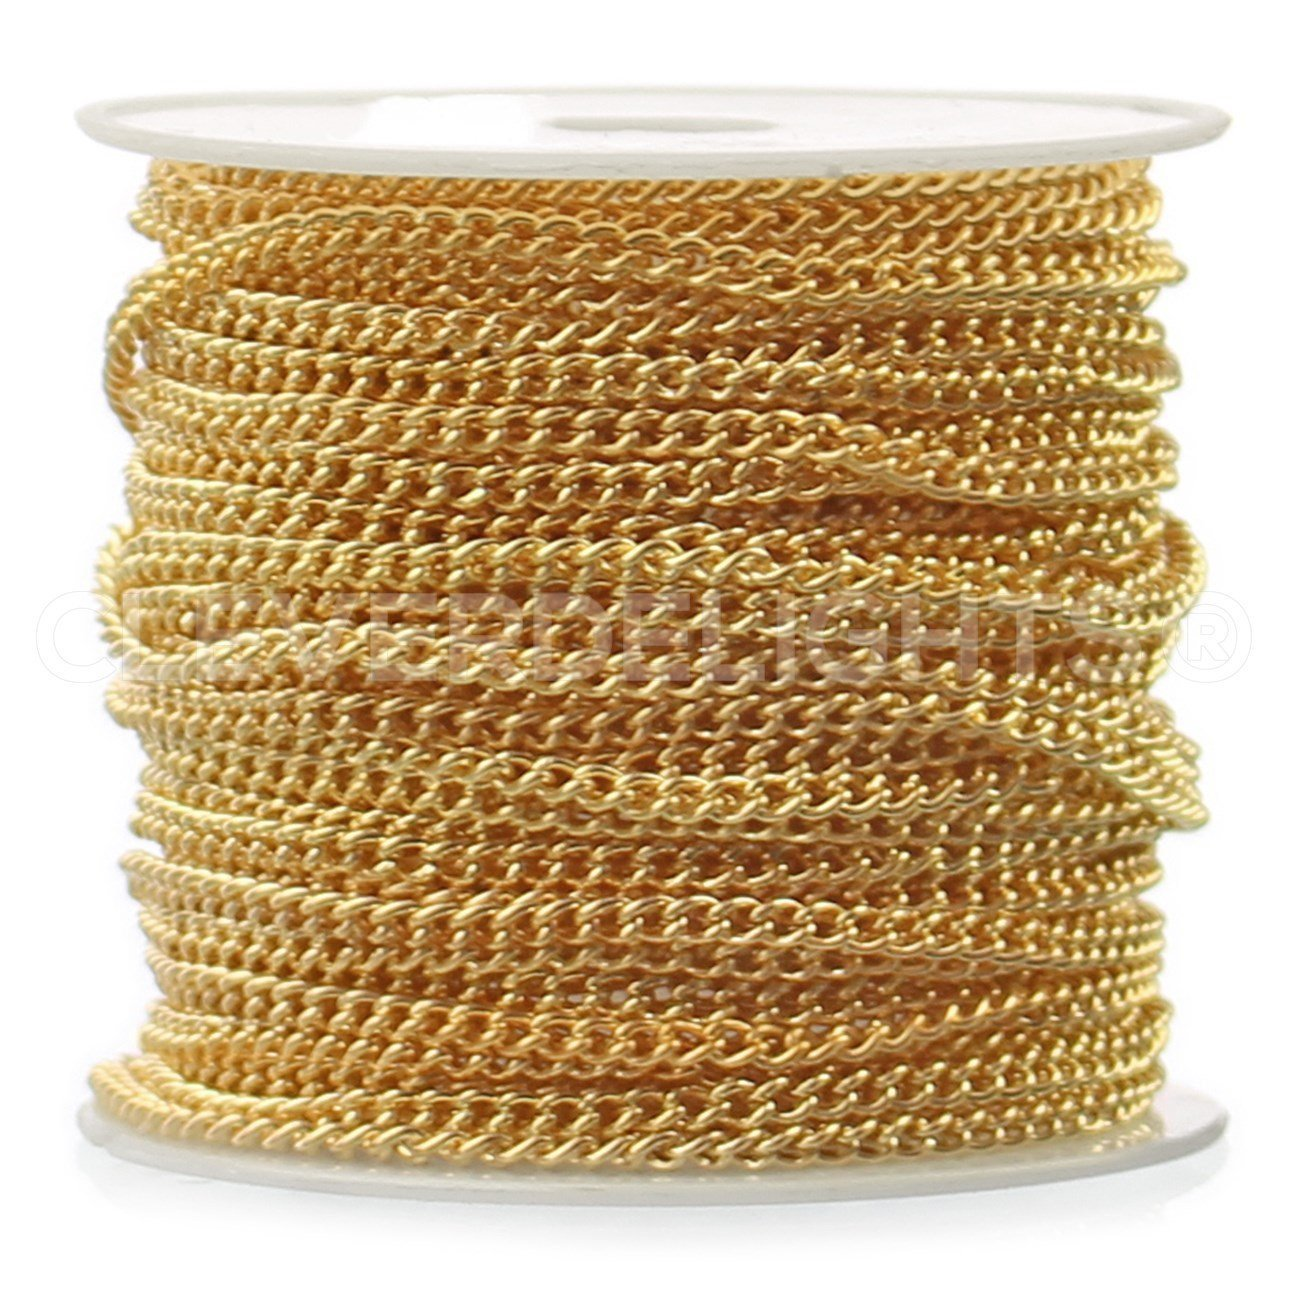 CleverDelights Curb Chain Spool - 2.2x3mm Link - Gold Color - 100 Feet